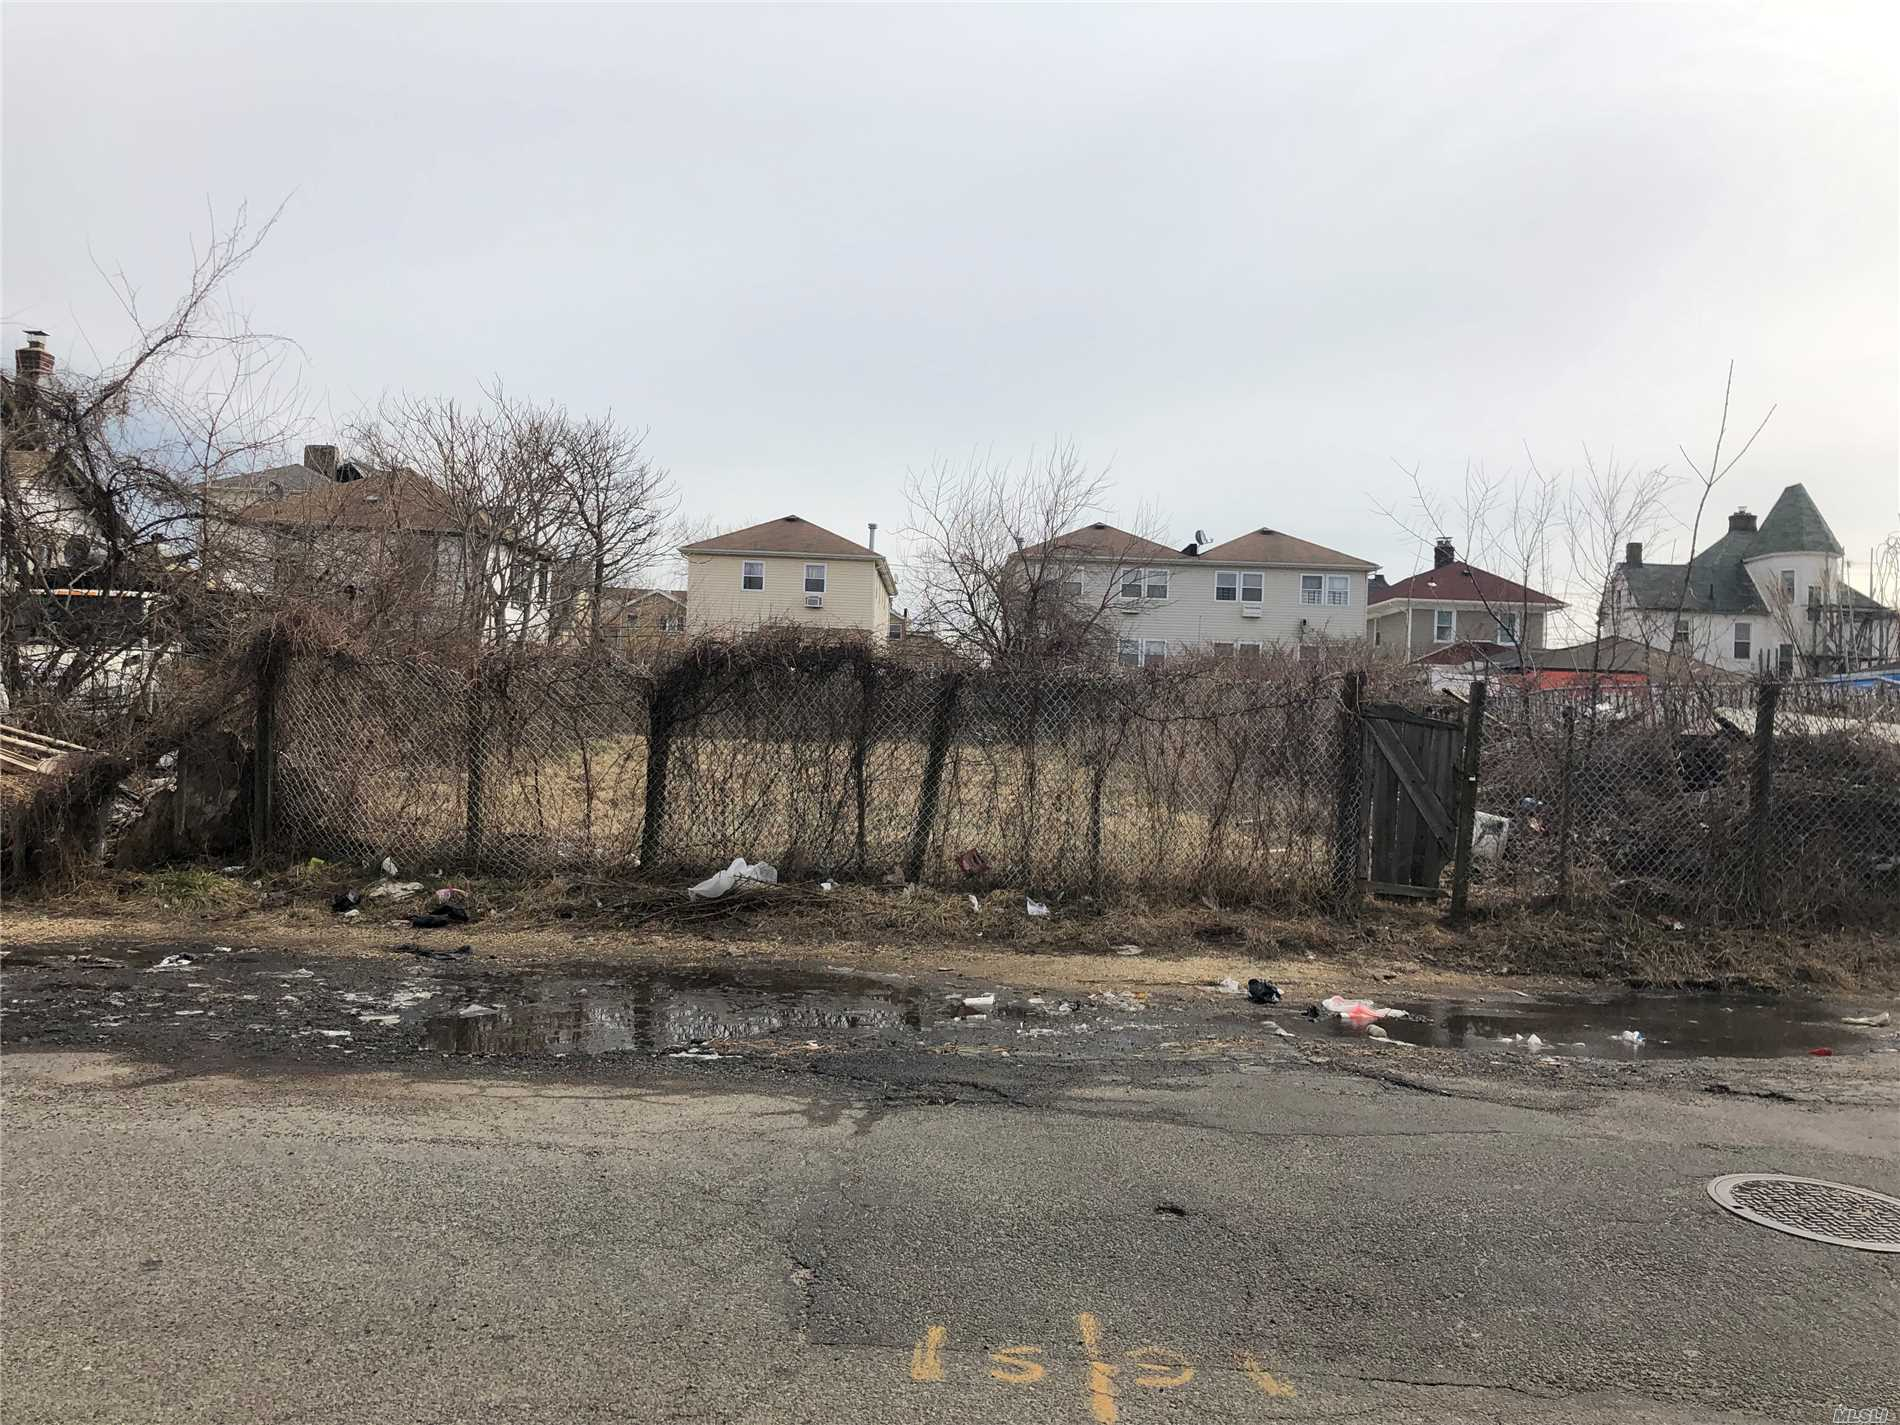 A Vacant 75X125 Excellent Residential Land In Up And Coming Neighborhood. Ideal For Multi 2 Family Houses. Near Lirr And A Subway.